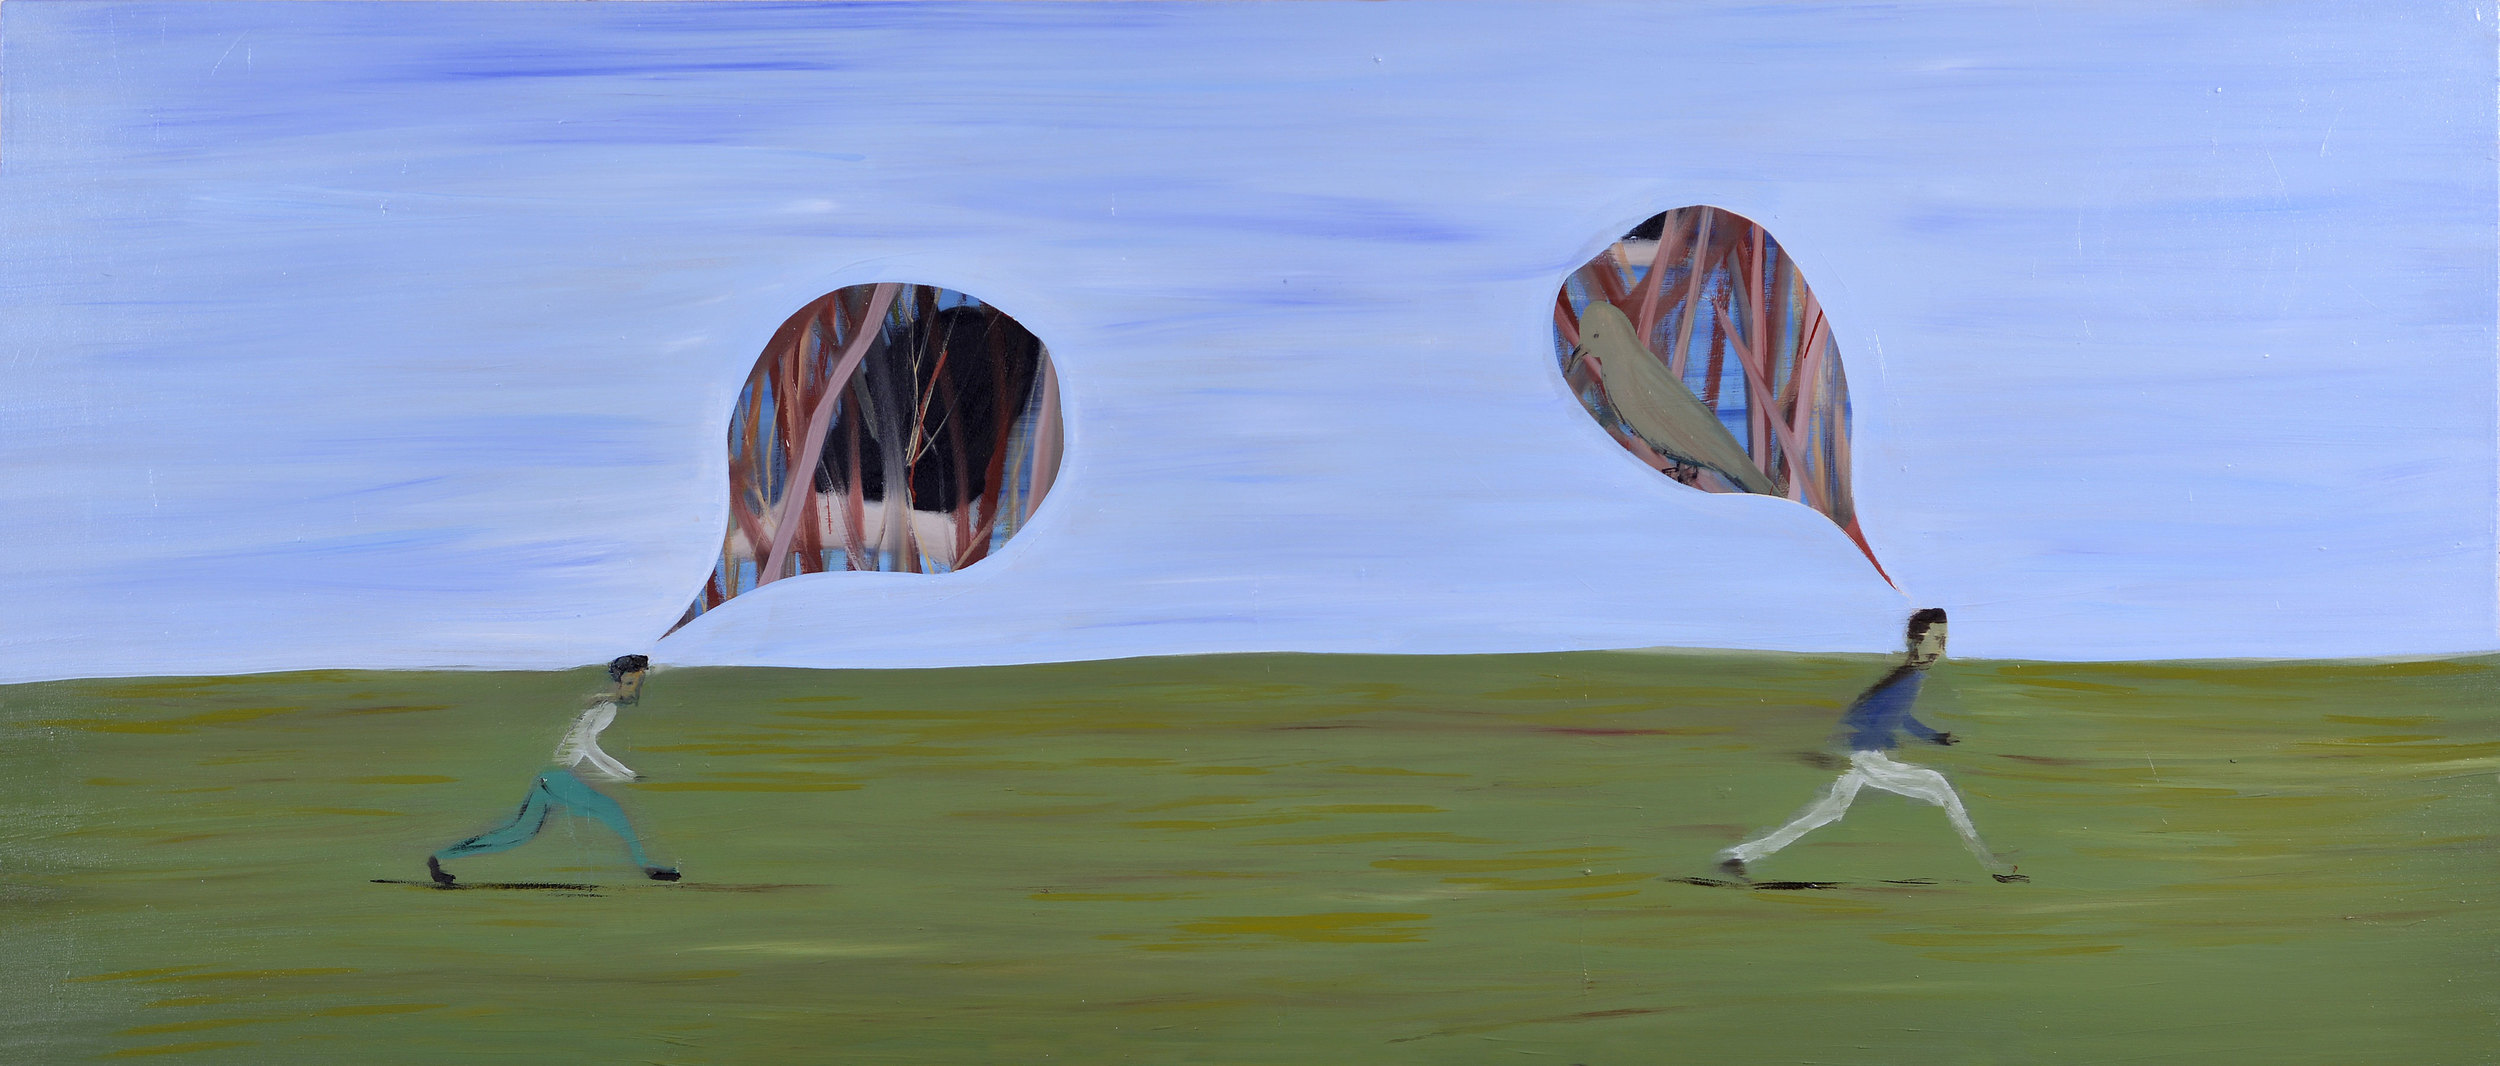 The Chase of Thoughts, 2013    Oil on canvas, 85x200 cm